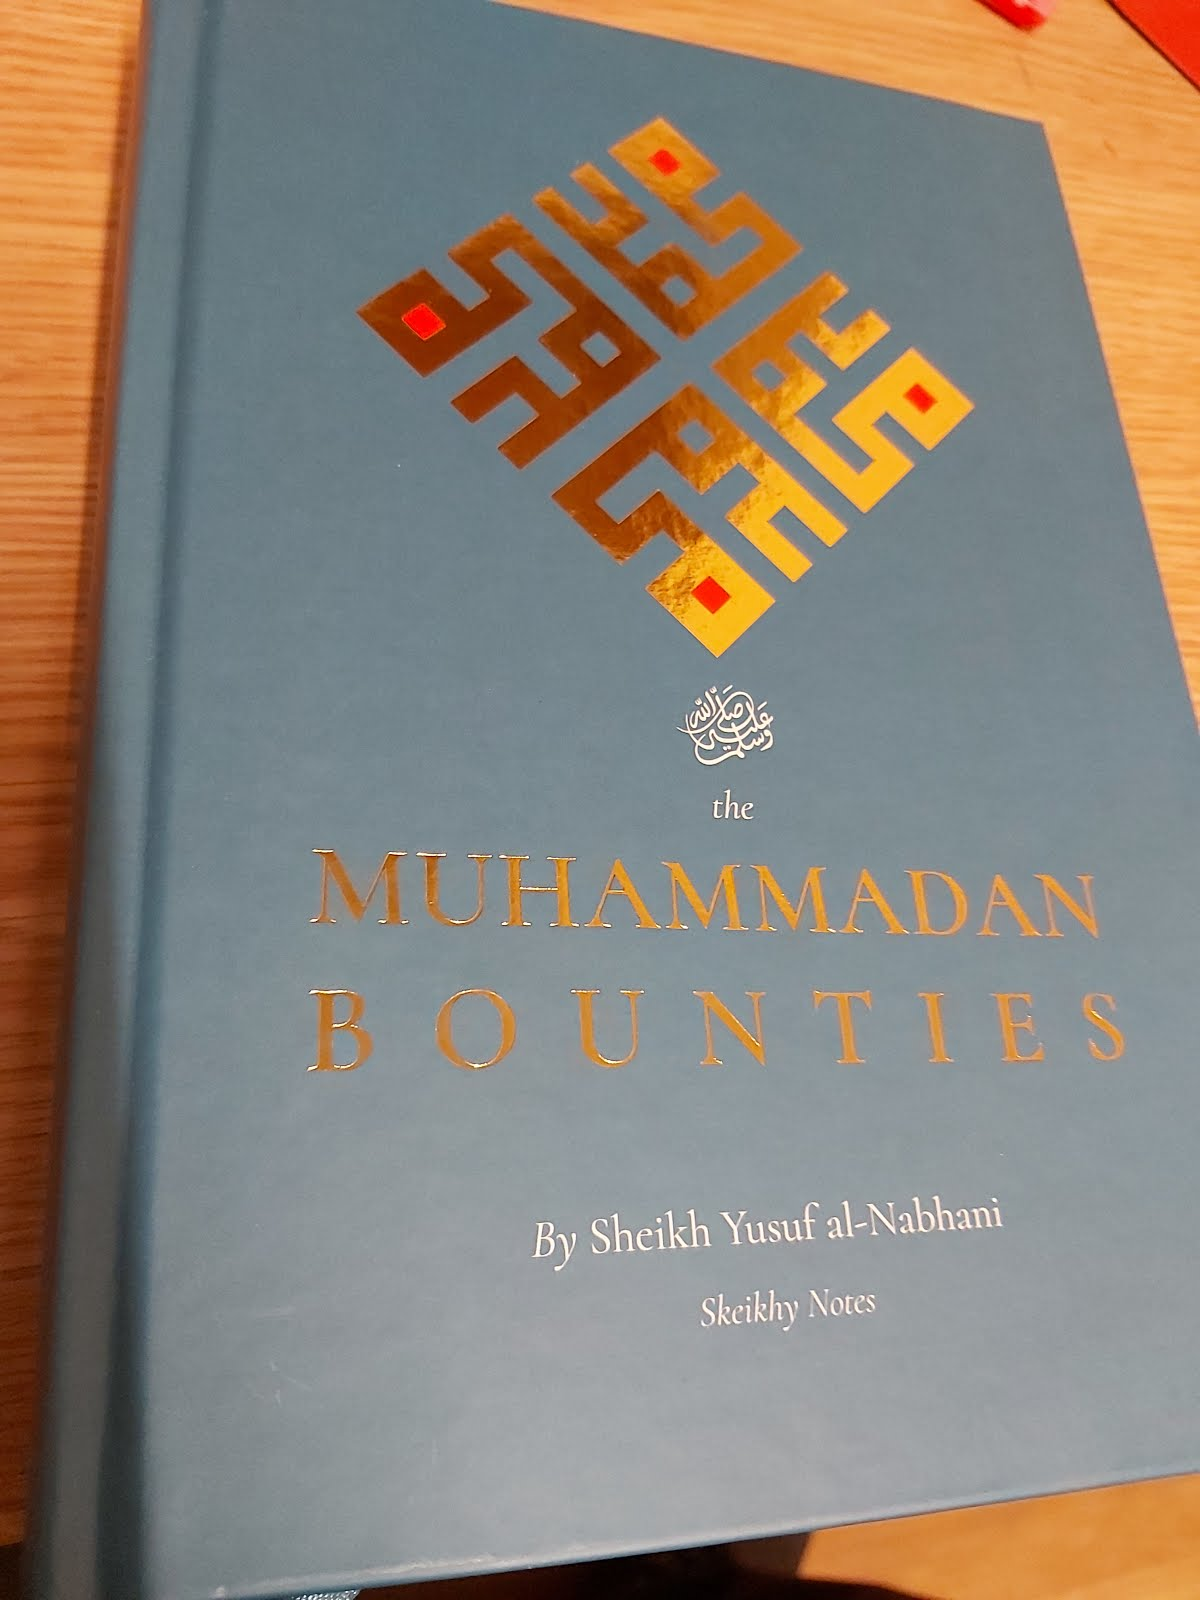 Muhammadan Bounties